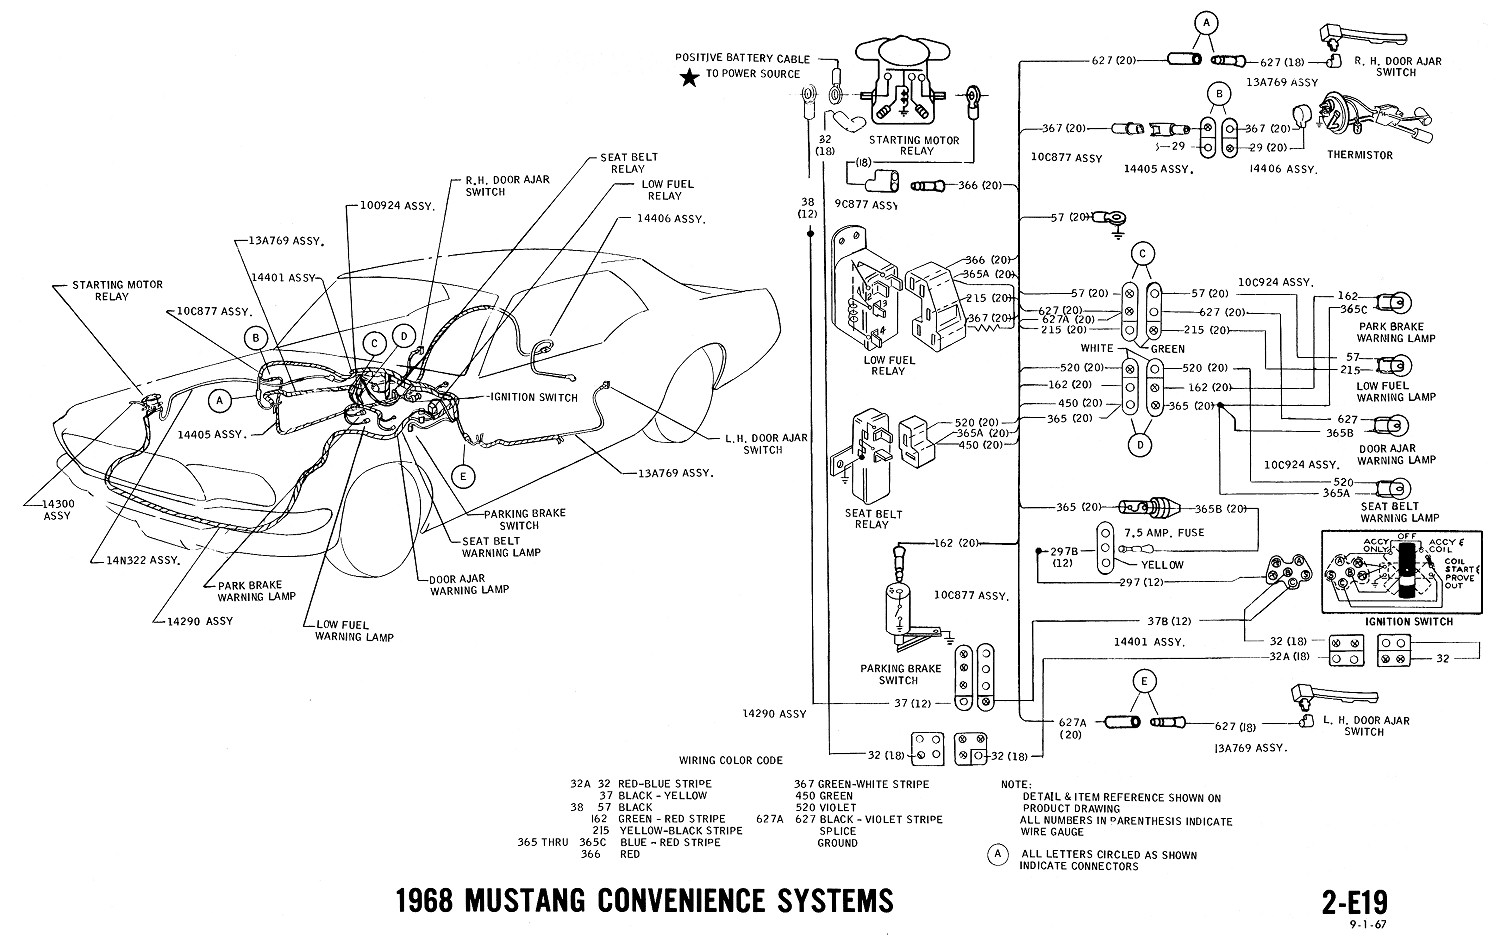 1968 mustang wiring diagrams evolving software convenience systems swarovskicordoba